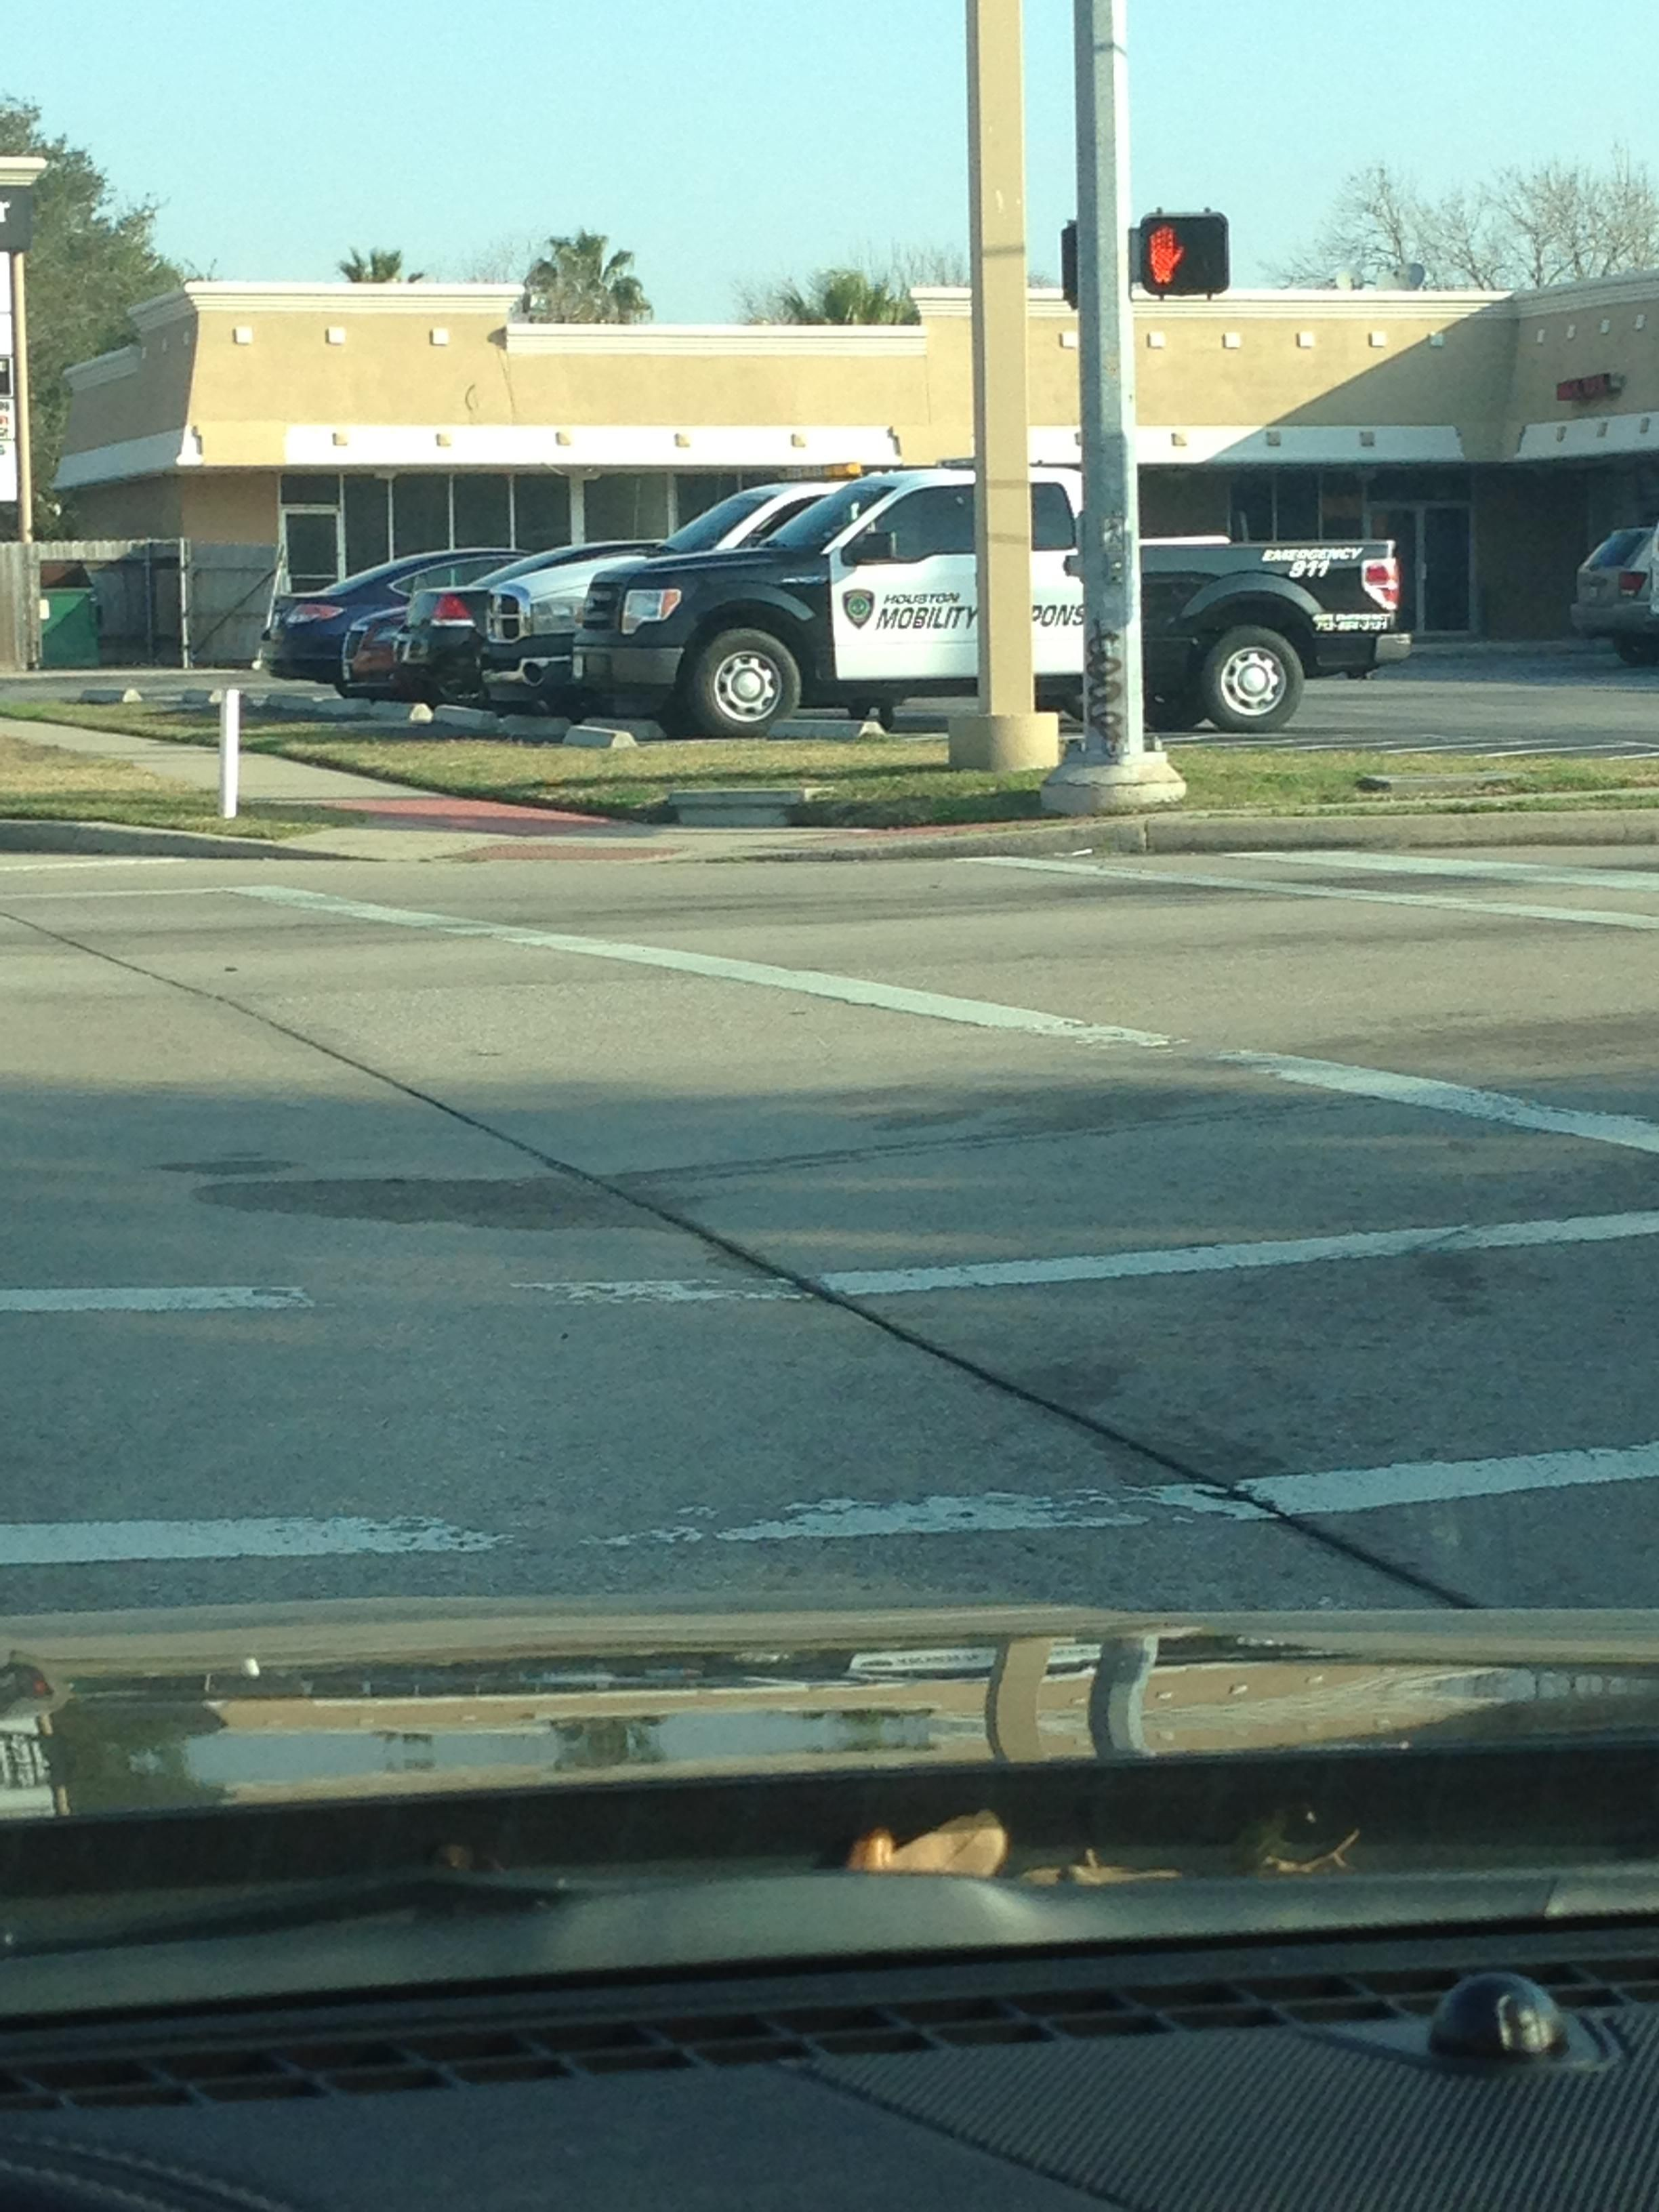 Houston Police Dept Mobility Response Ford F150 With Images